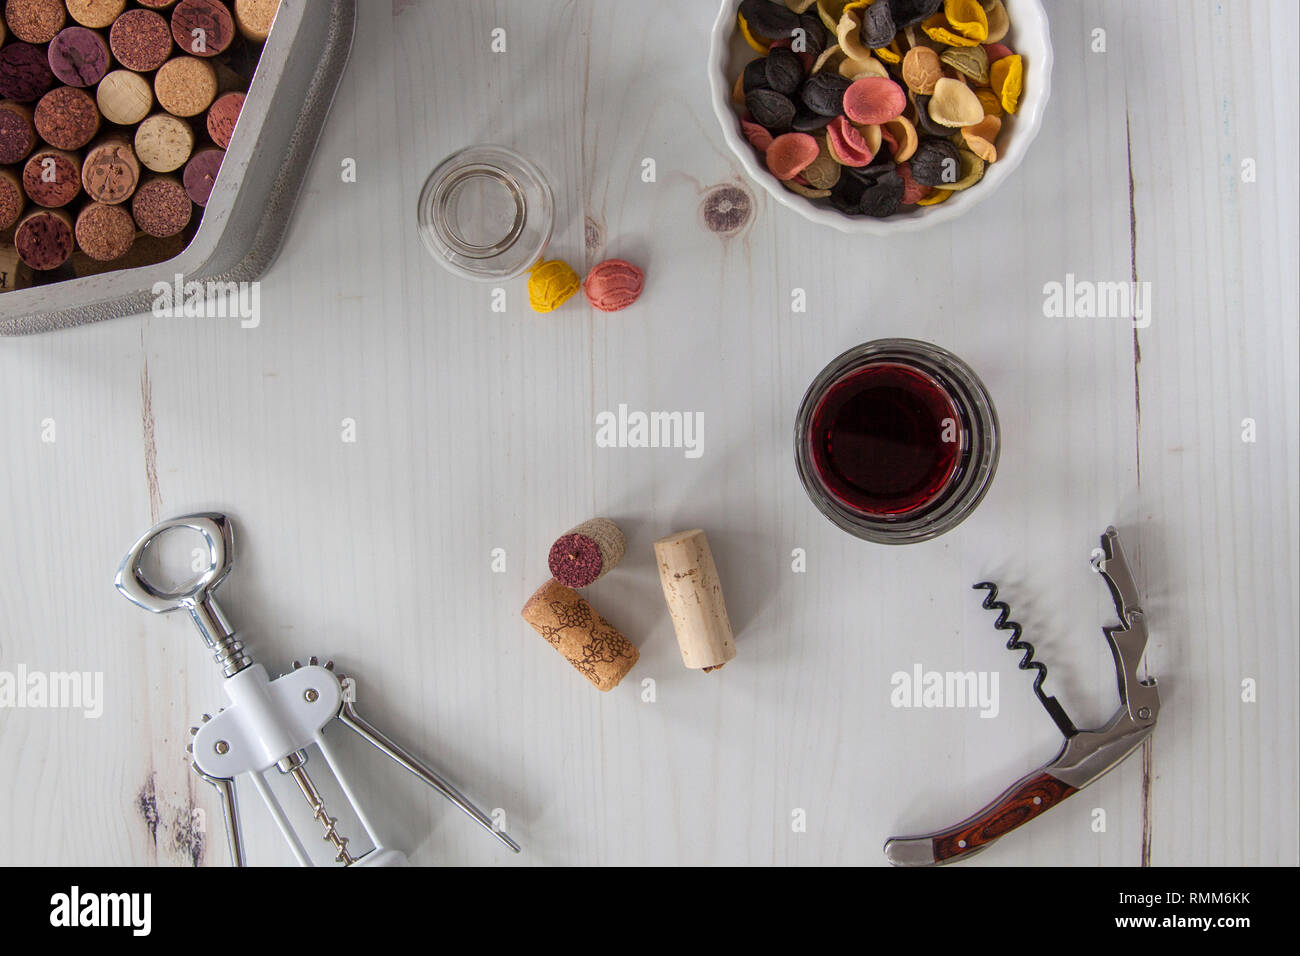 Corkscrews with corks, wine and pasta, overhead - Stock Image